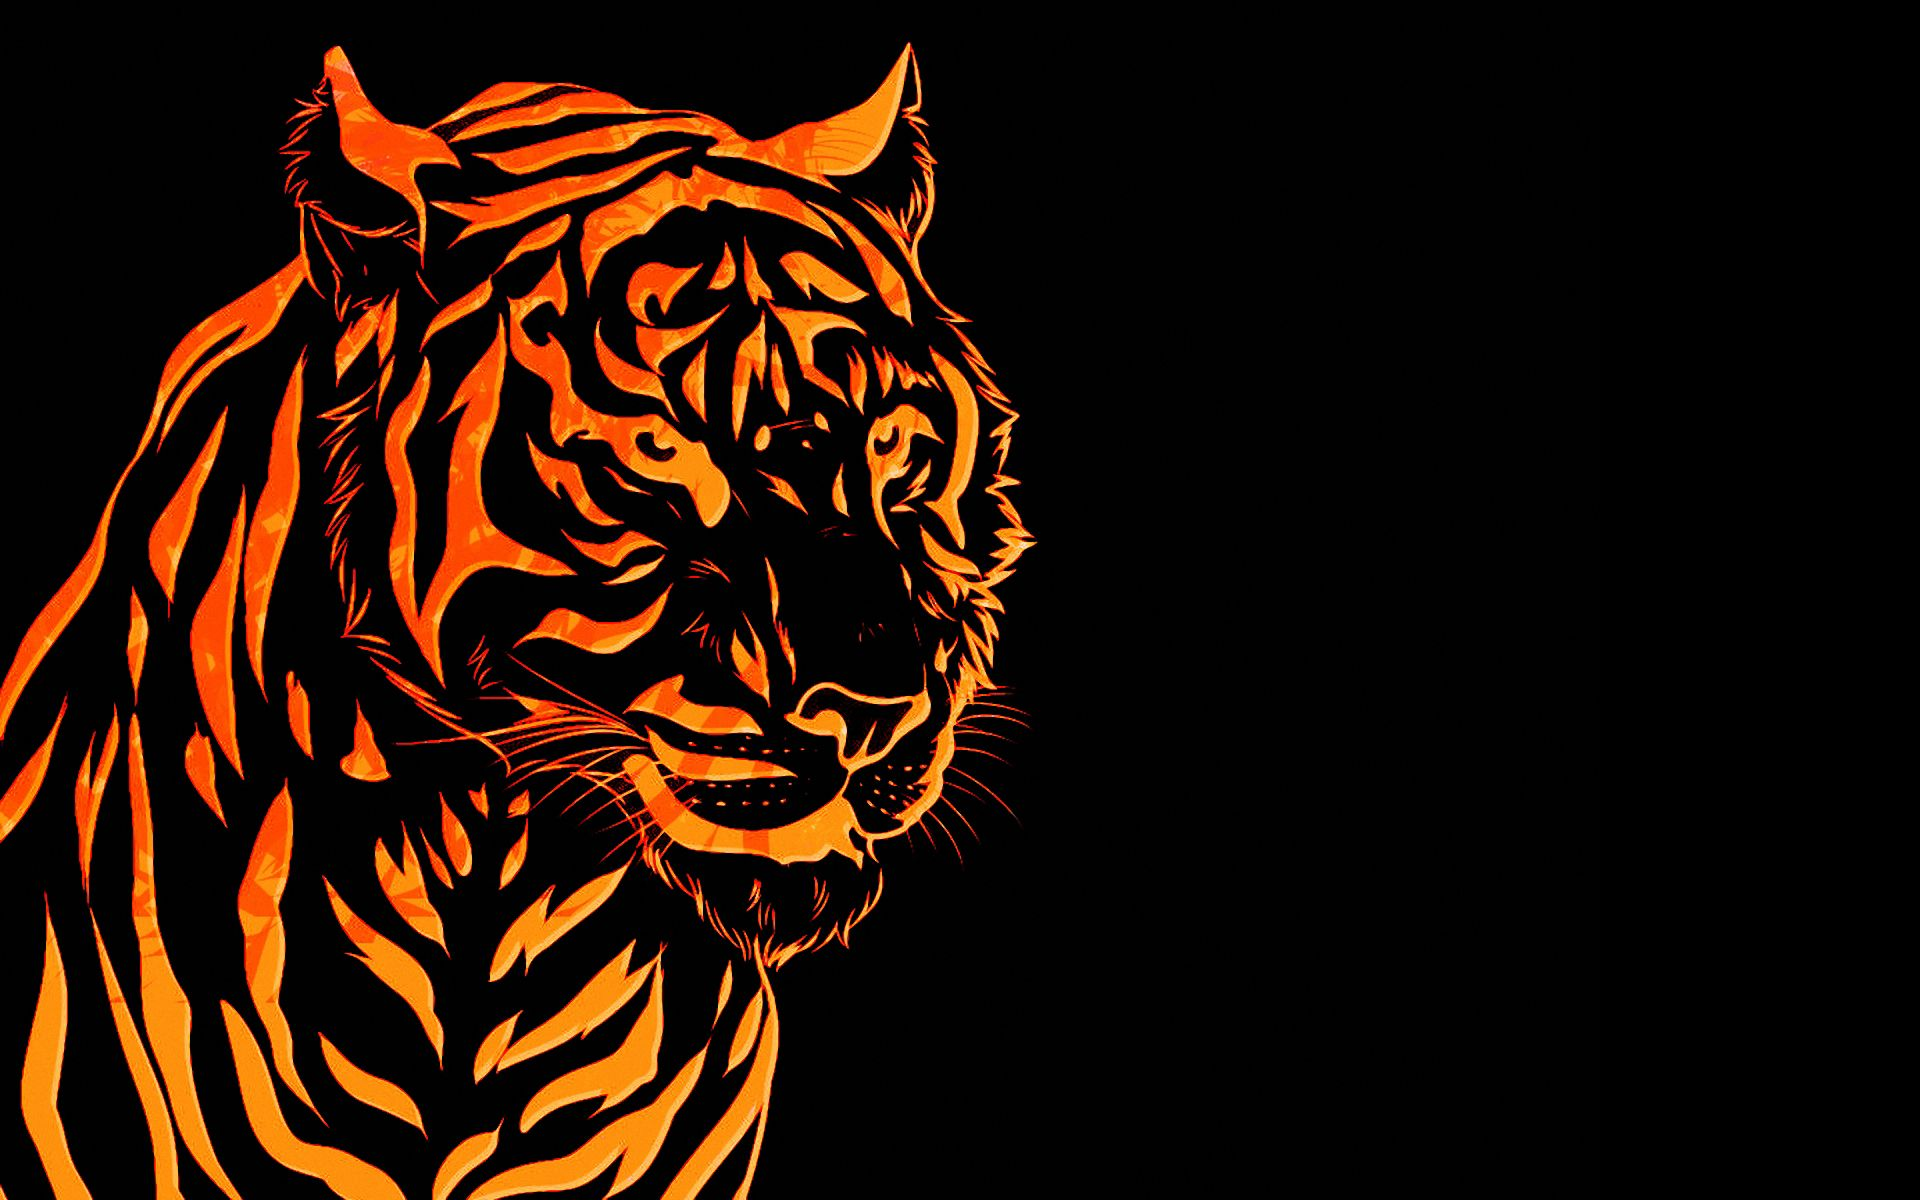 Tiger Wallpaper High Quality Resolution Tiger Wallpaper Tiger Images Tiger Pictures